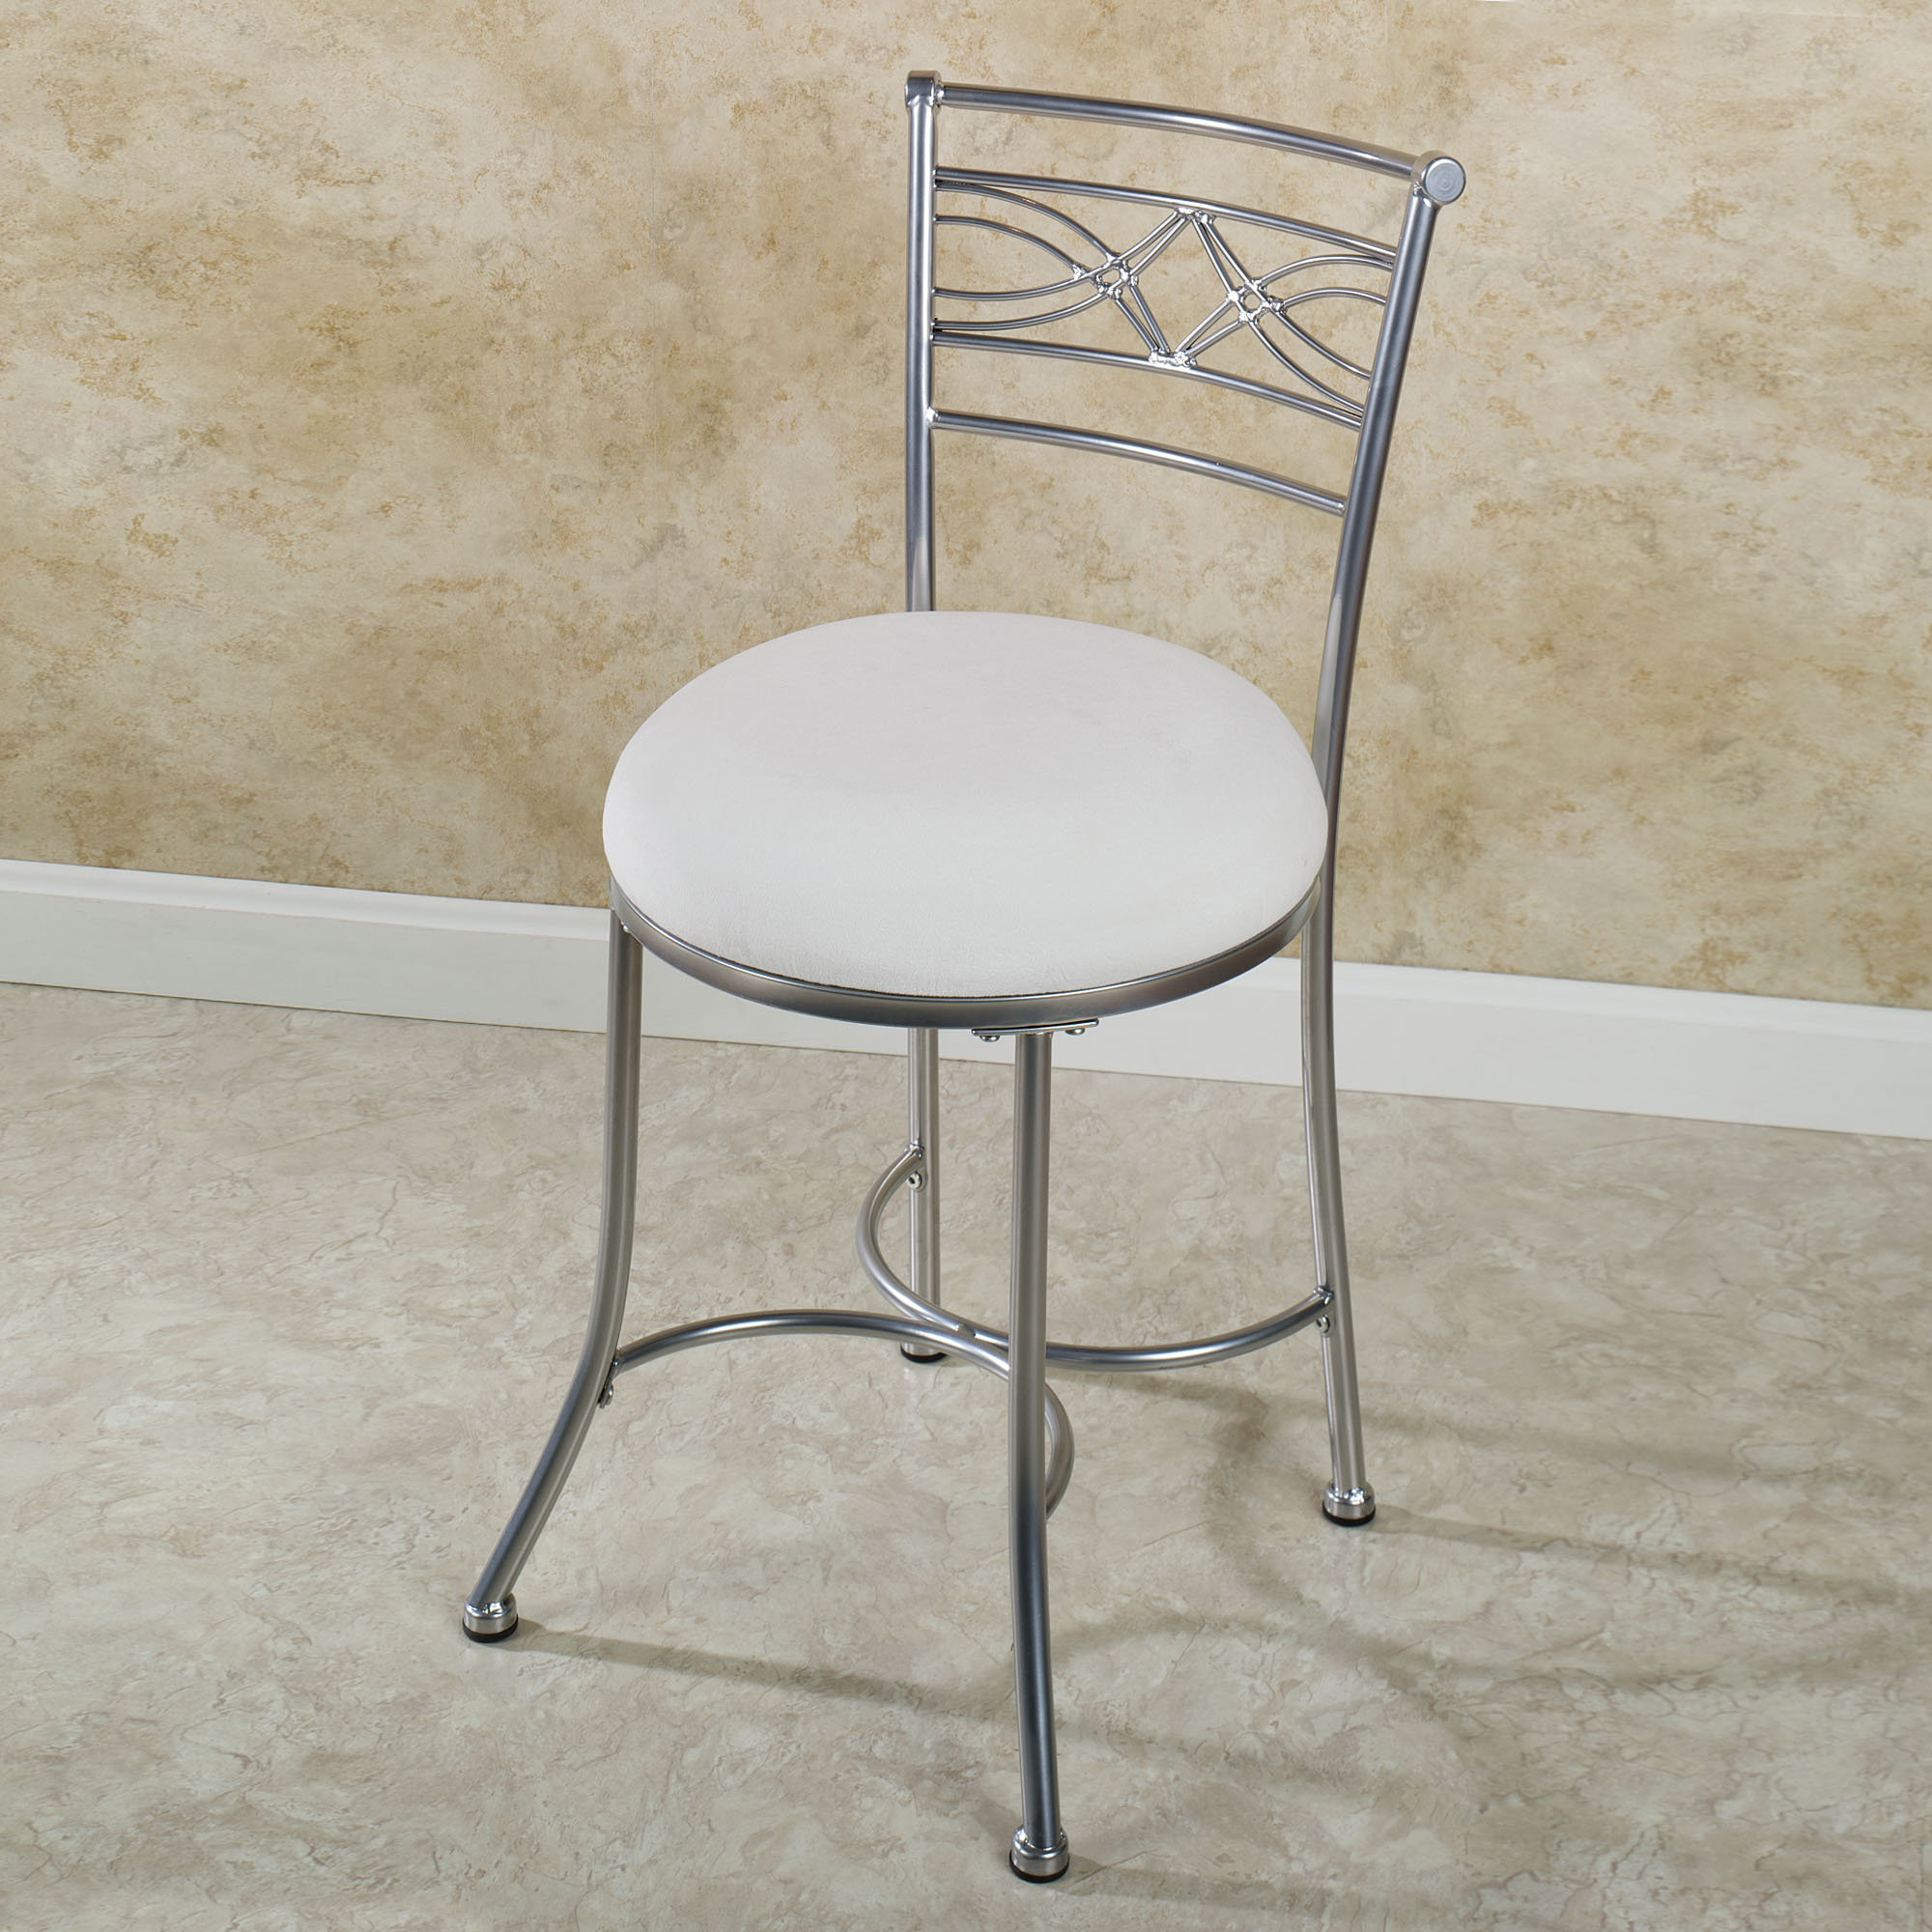 Inspiring vanity stools for home furniture with vanity stool ikea